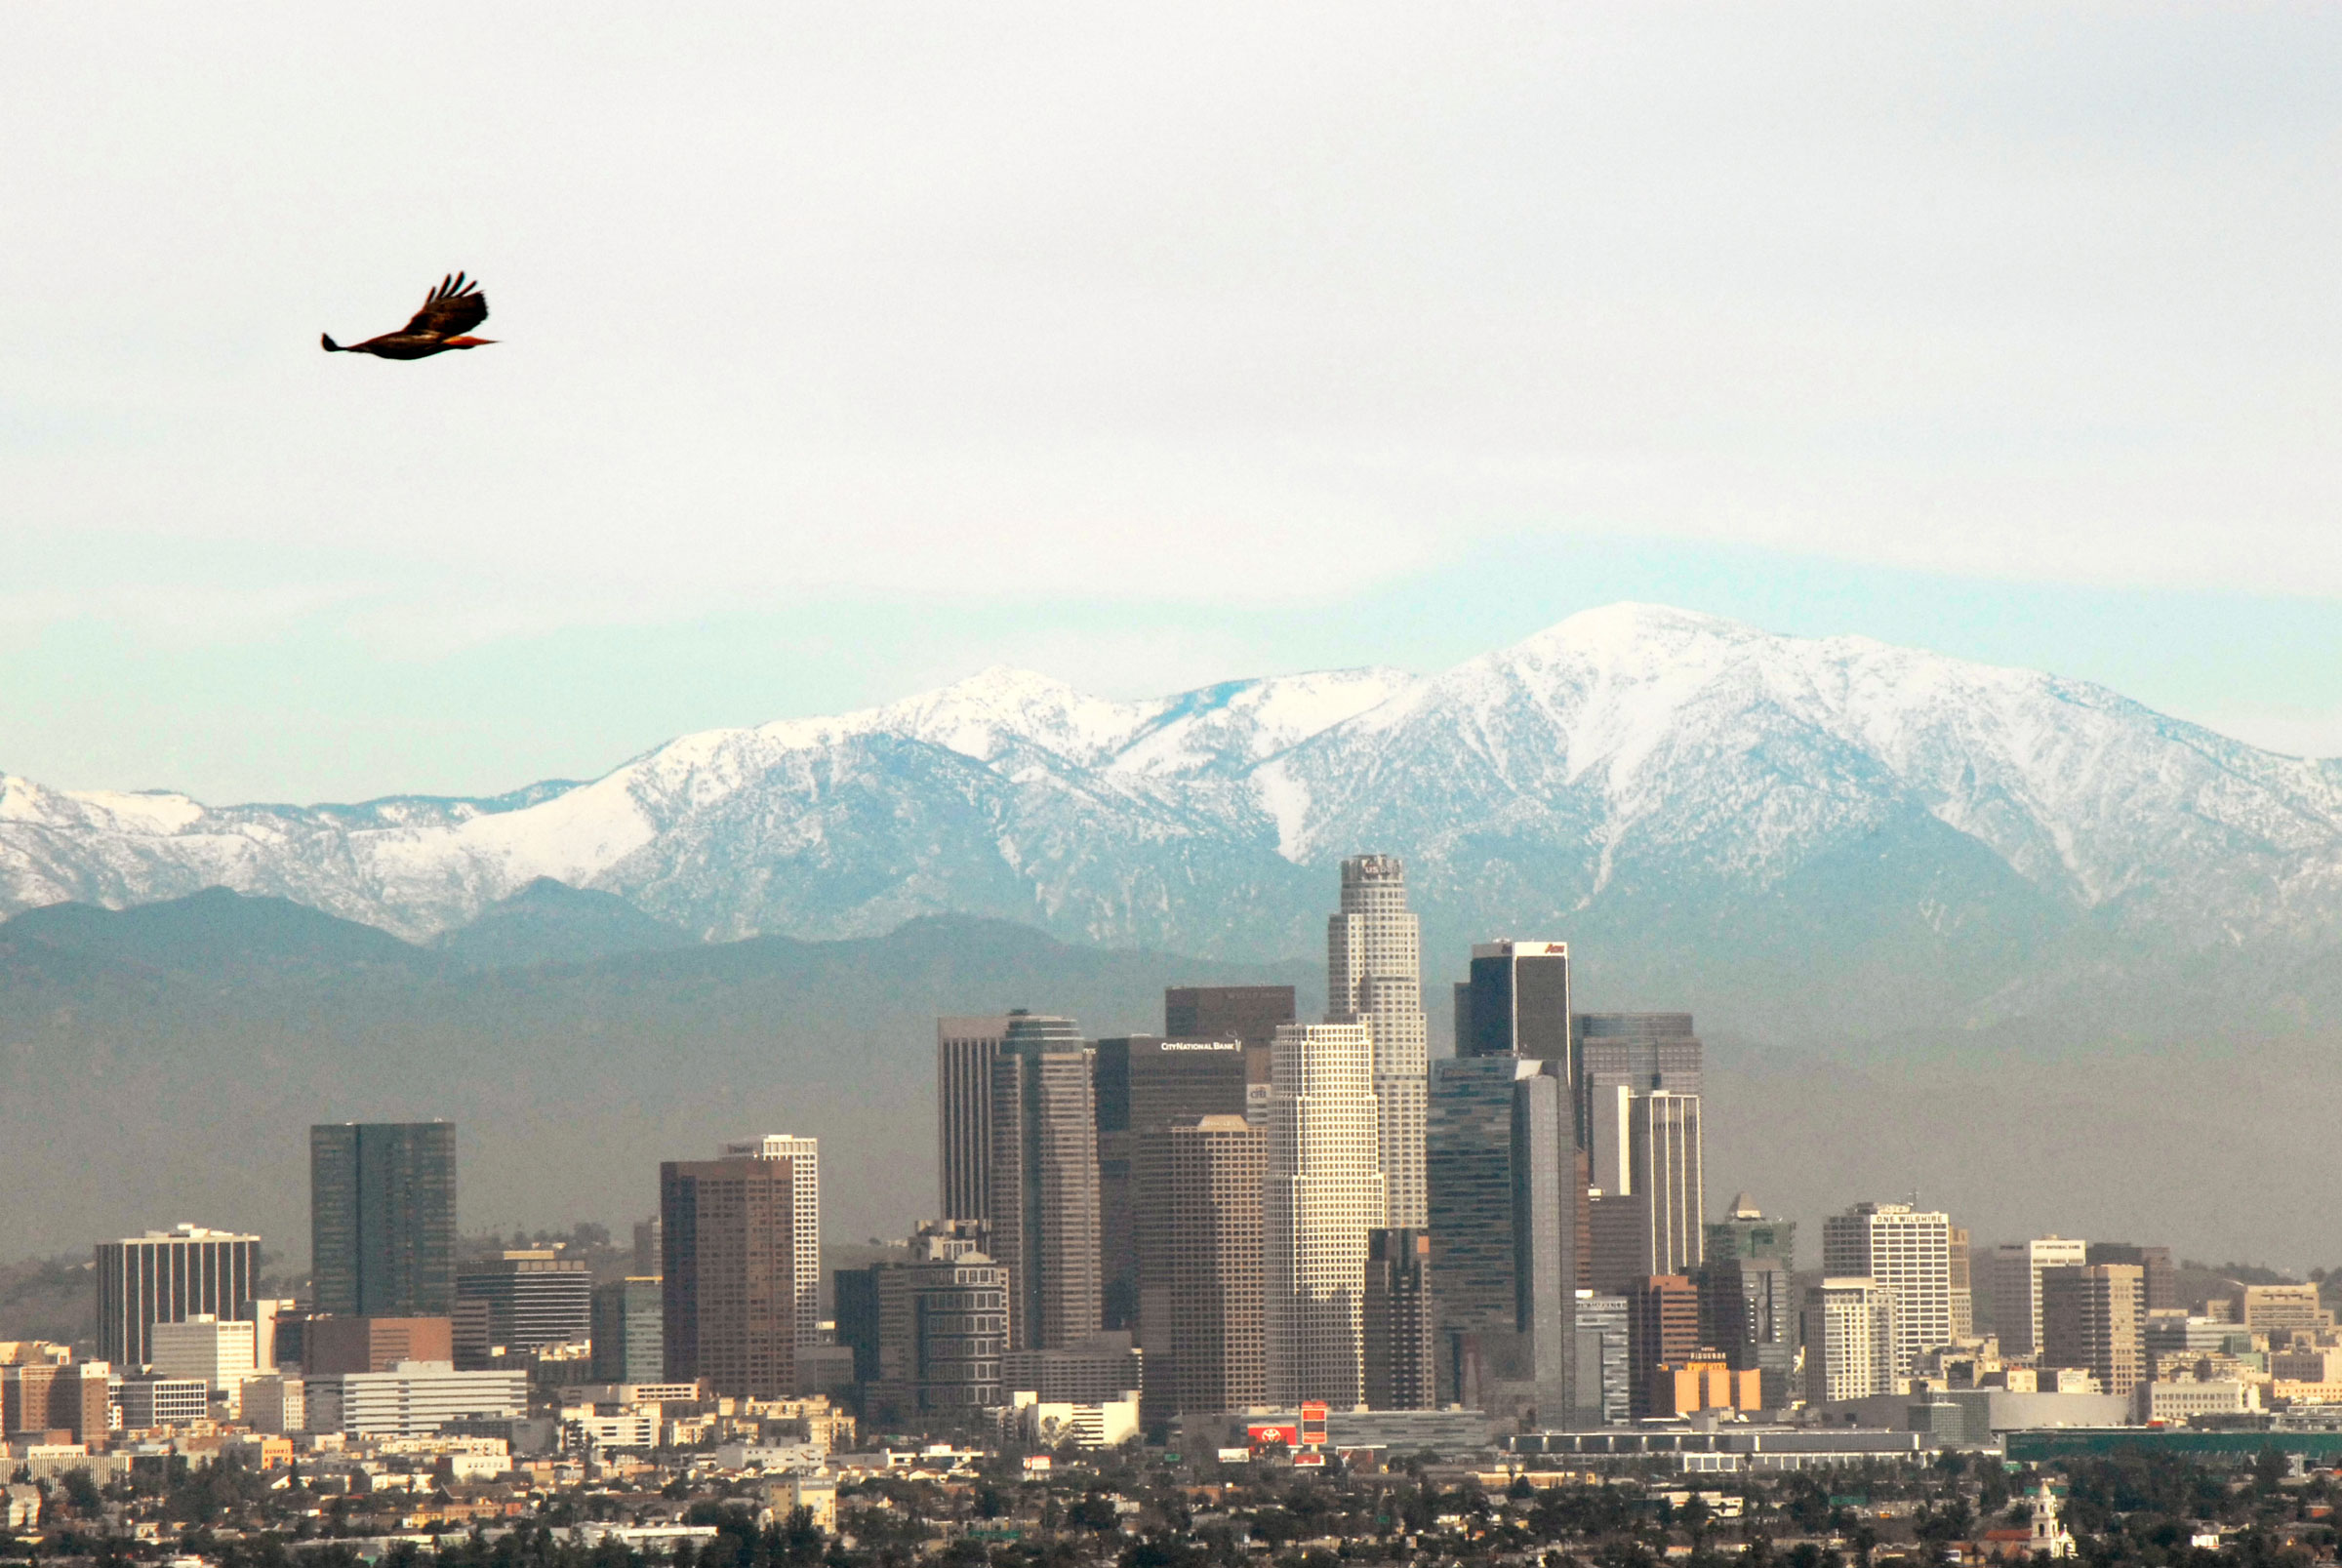 In the 1950s and 1960s, people in Los Angeles breathed some of the dirtiest air in the world. Today, thanks to the Clean Air Act, it's much cleaner—although there's still more work to do. Ramon Preciado/Alamy